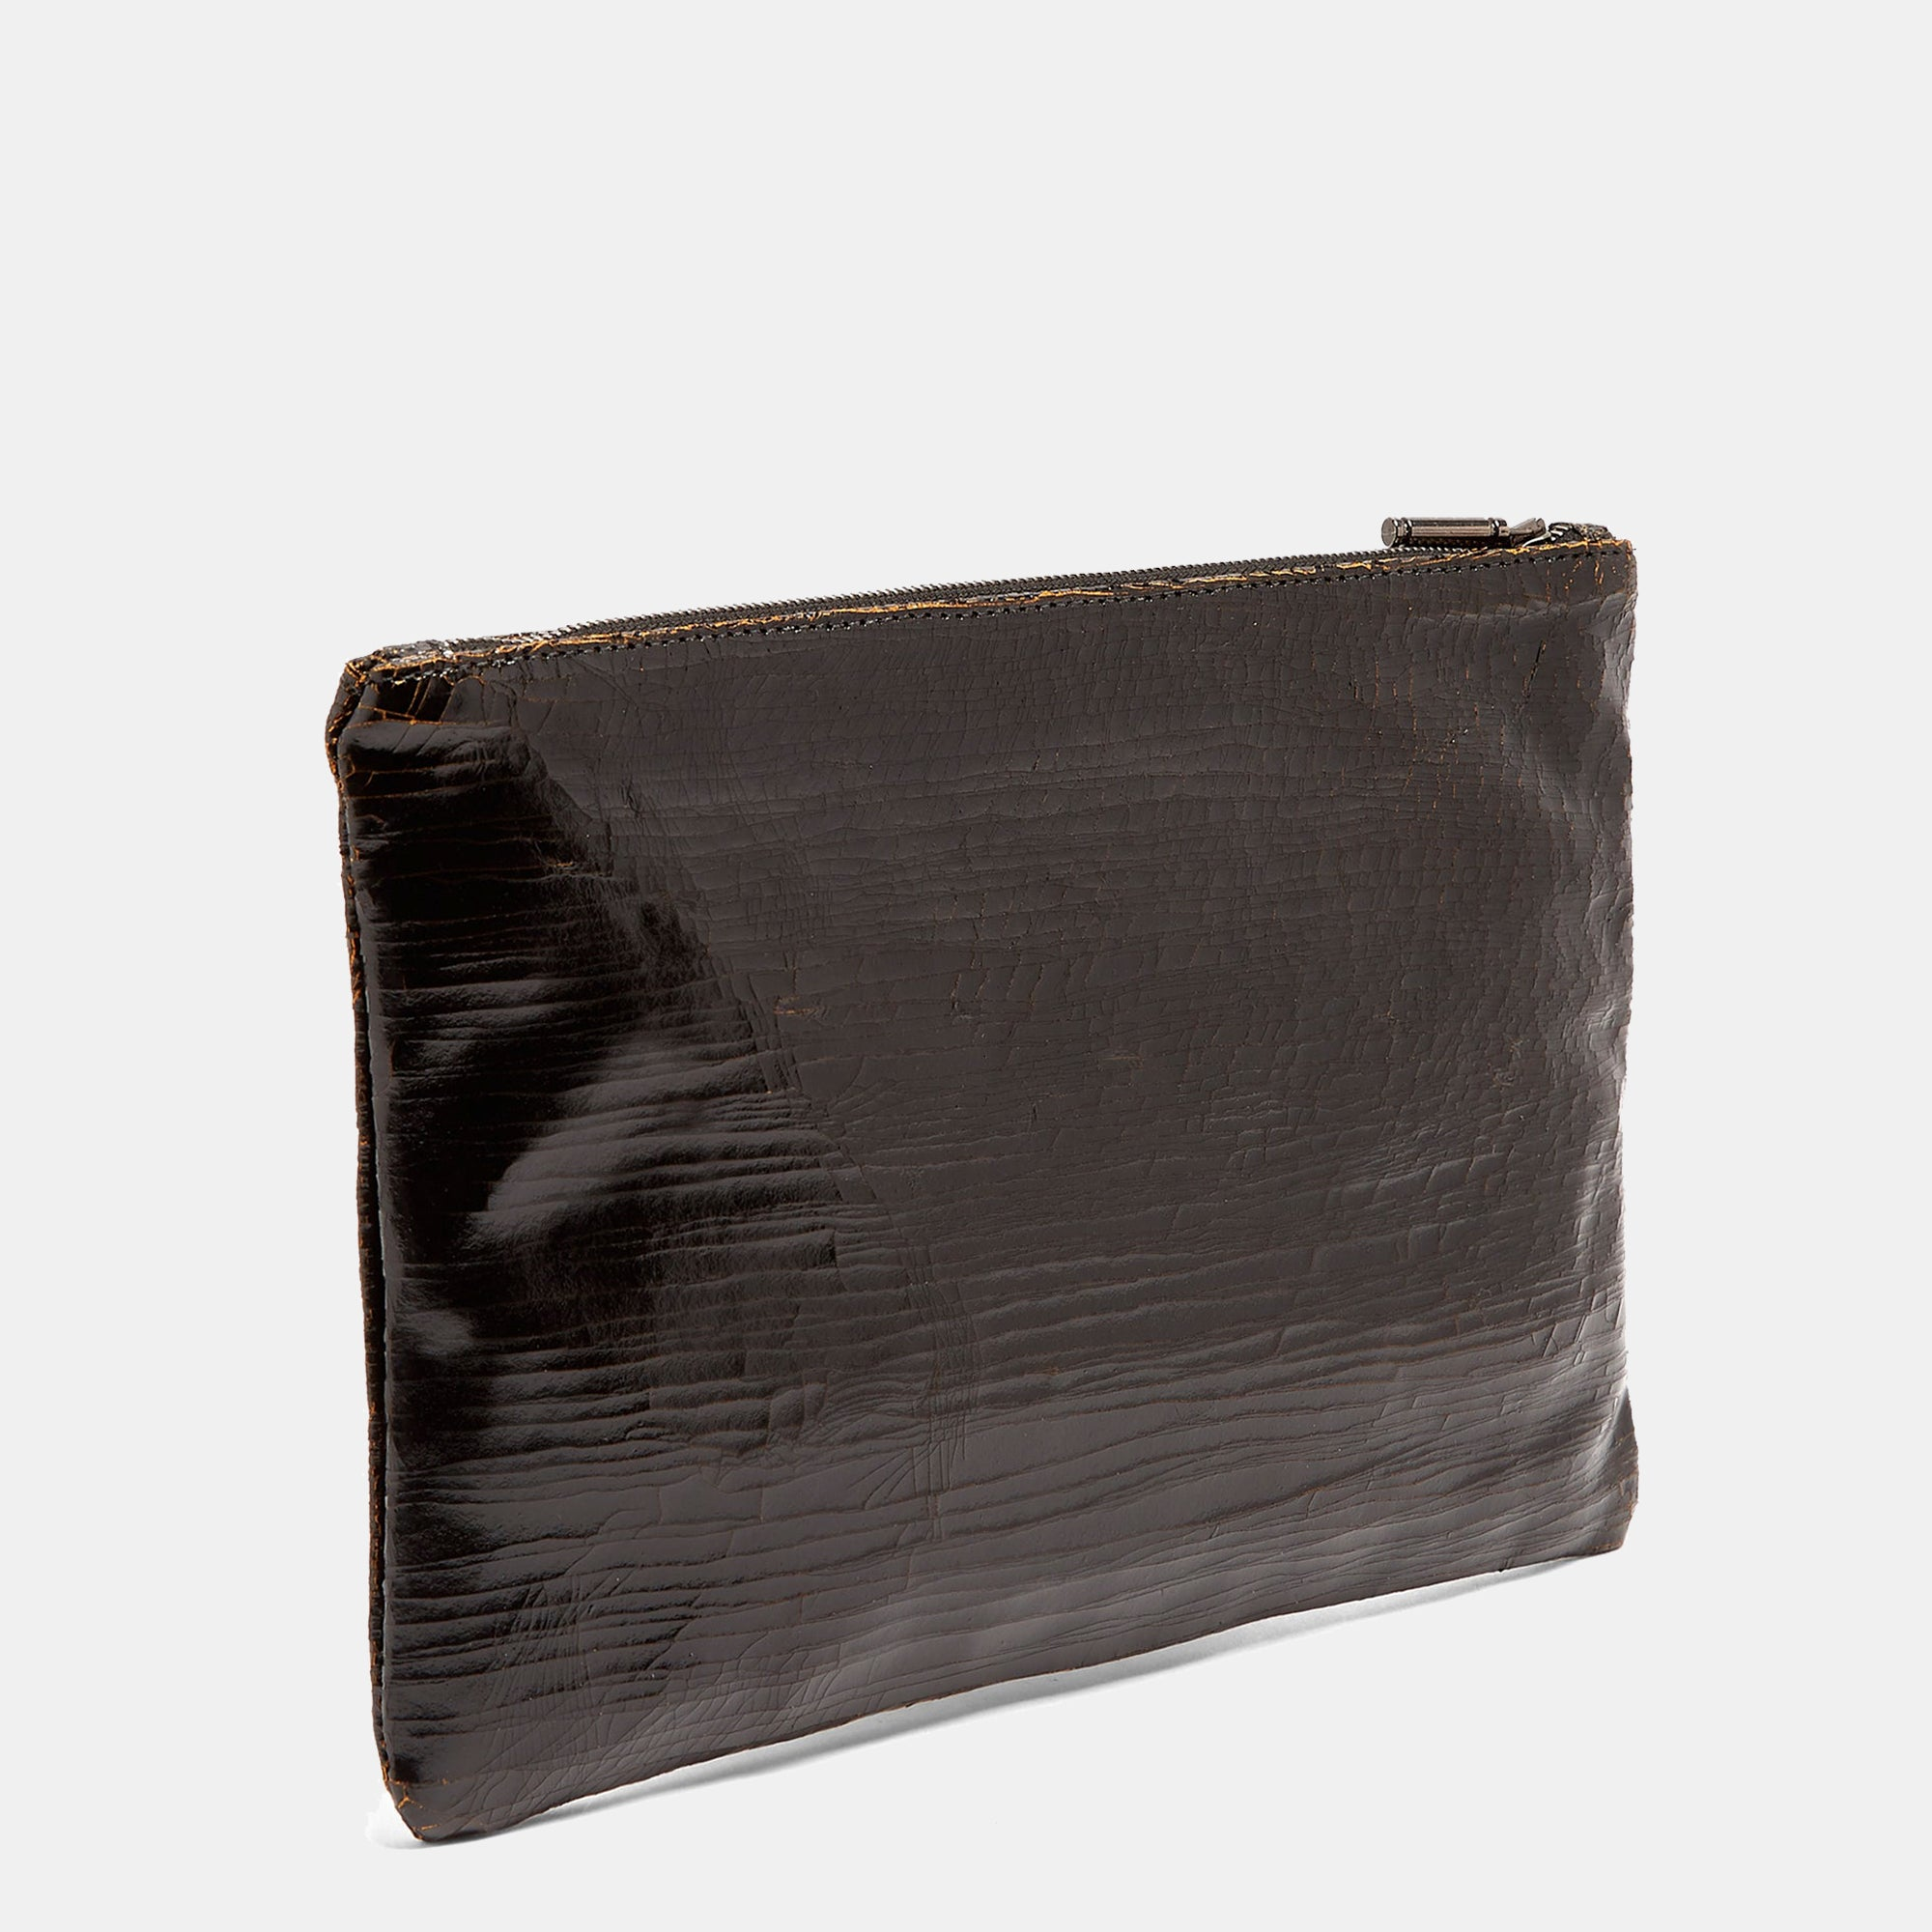 Luxury leather sustainable silk zip pouch cosmetics bag clutch